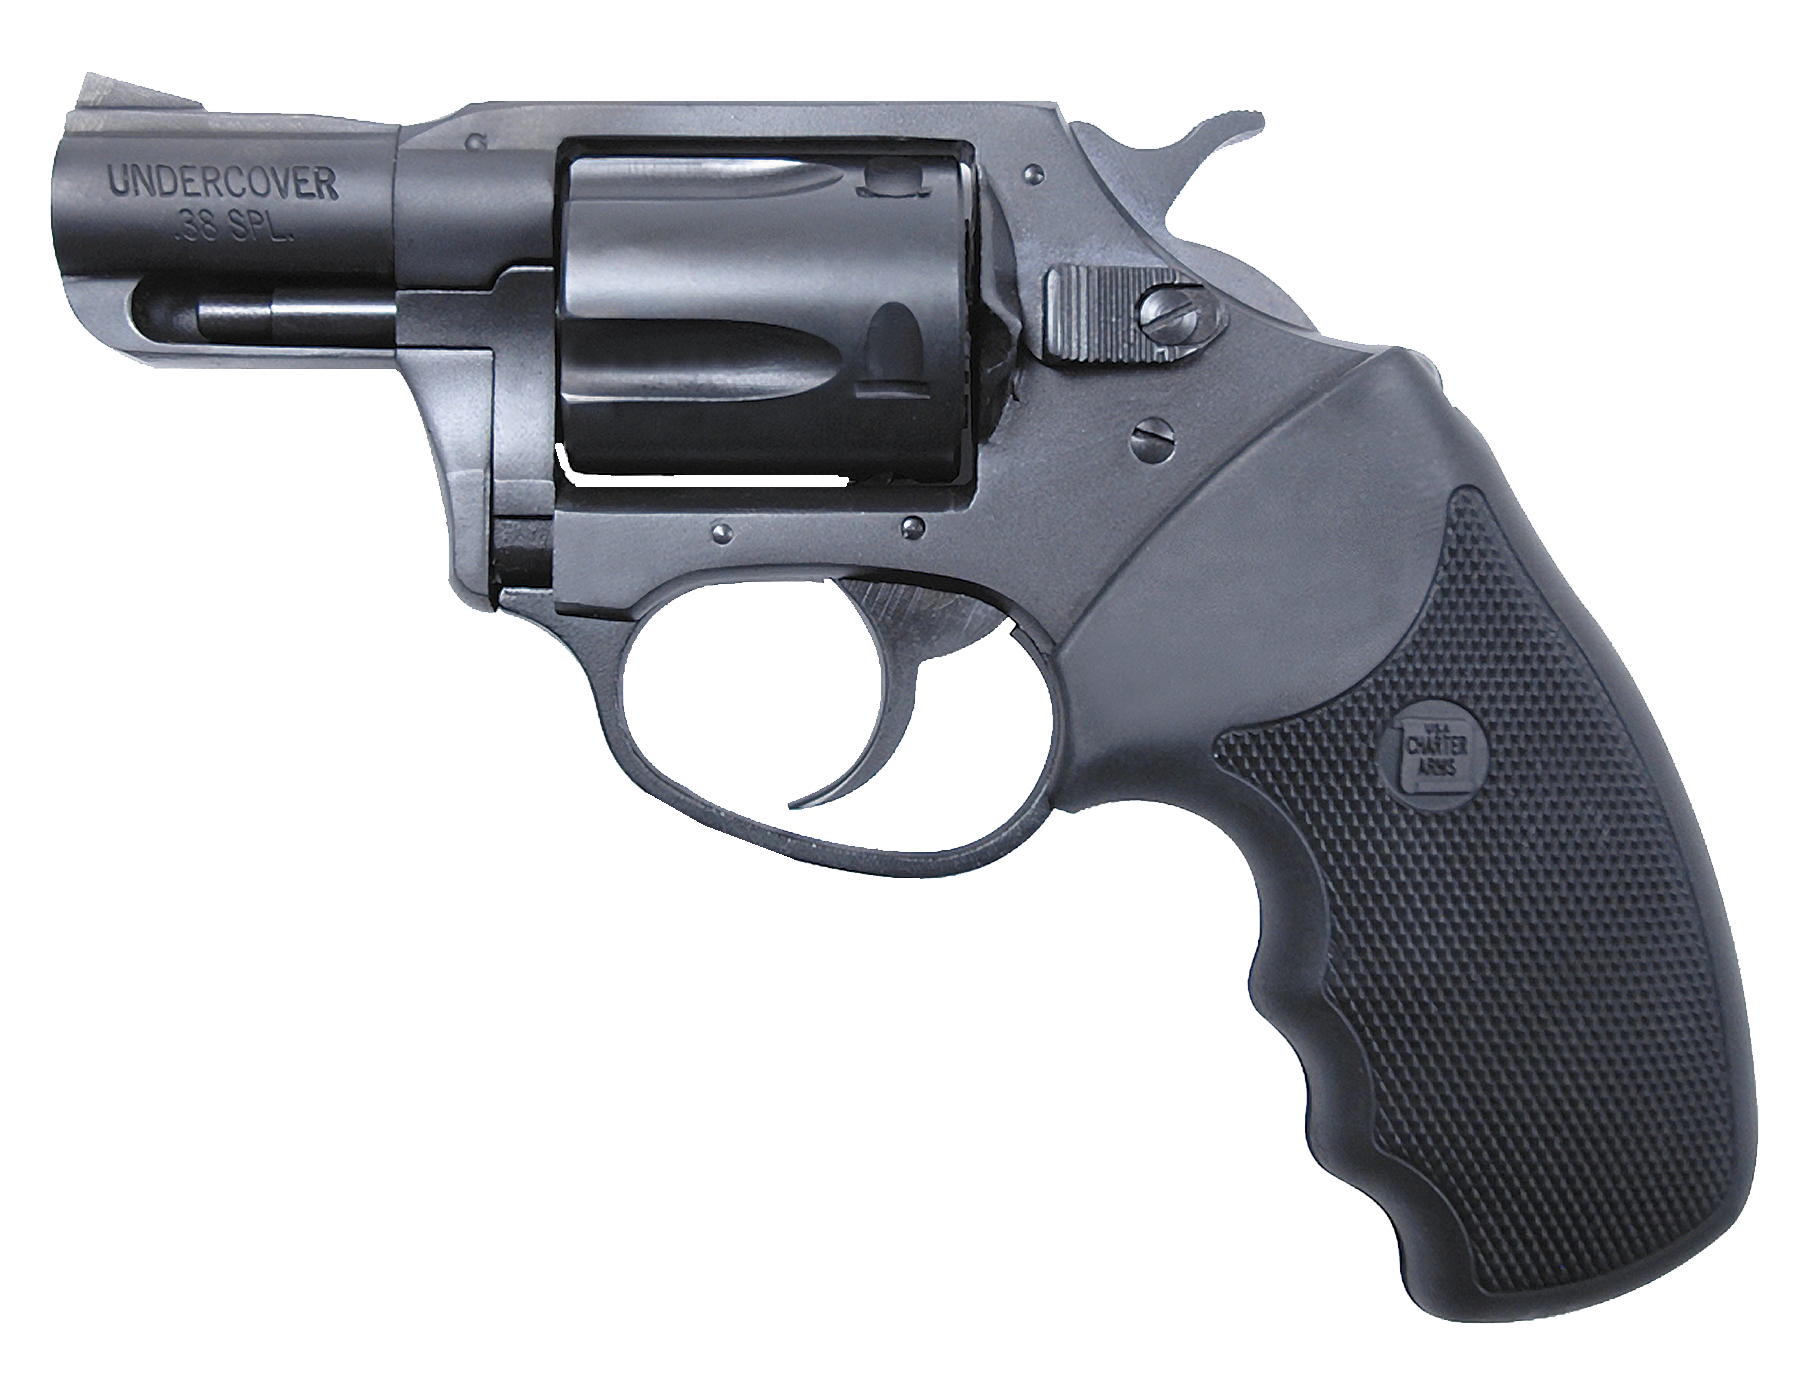 Charter Arms 13820 Undercover Standard Single/Double 38 Special 2